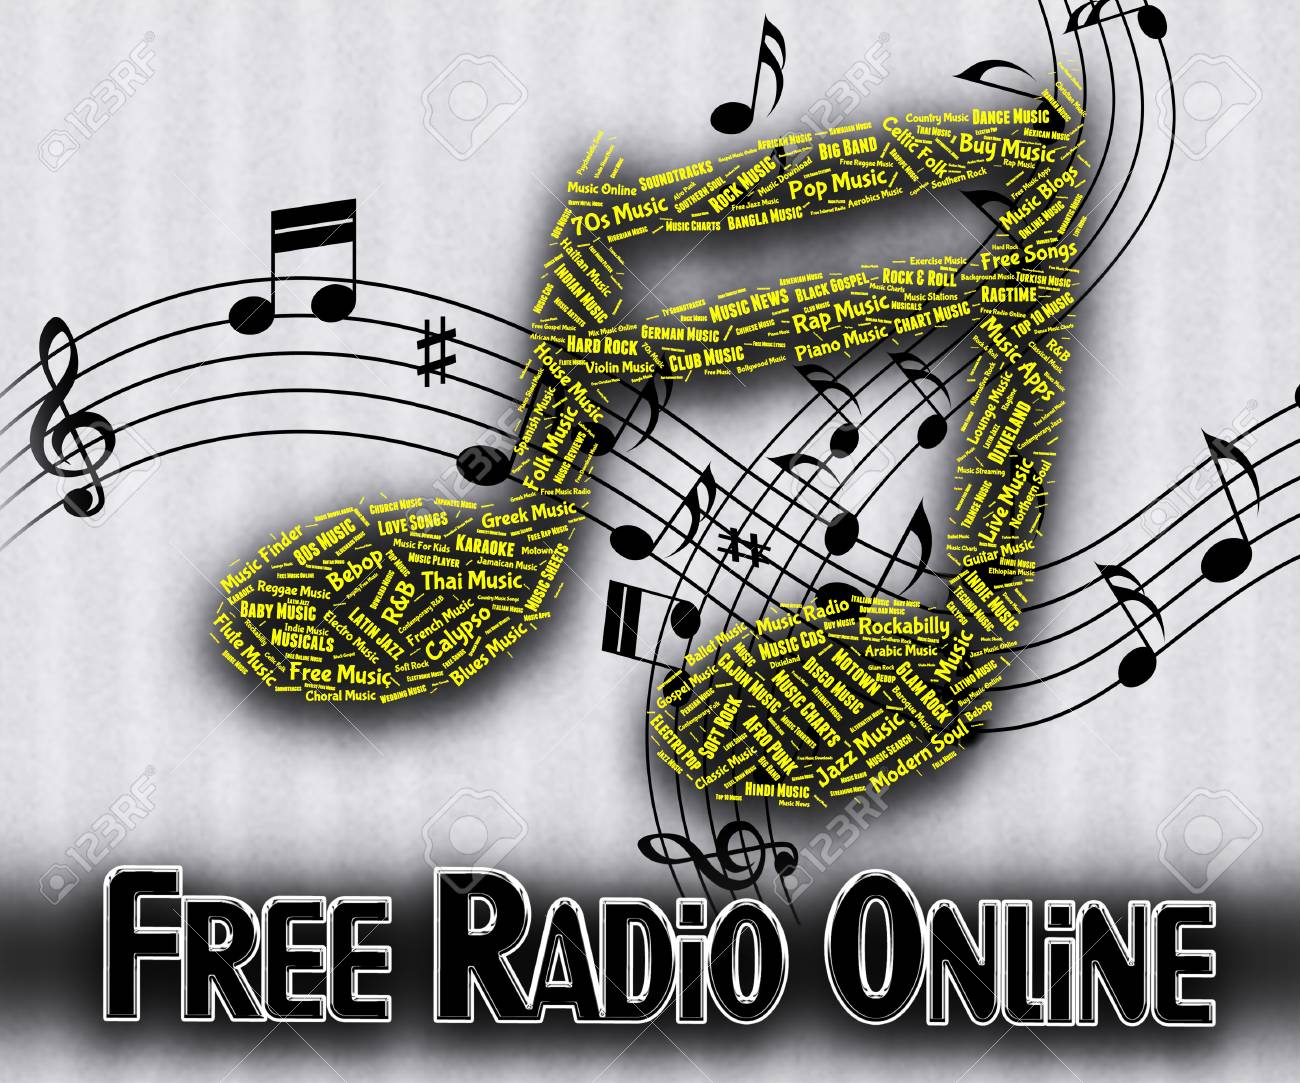 Free Radio Online Meaning No Charge And Network